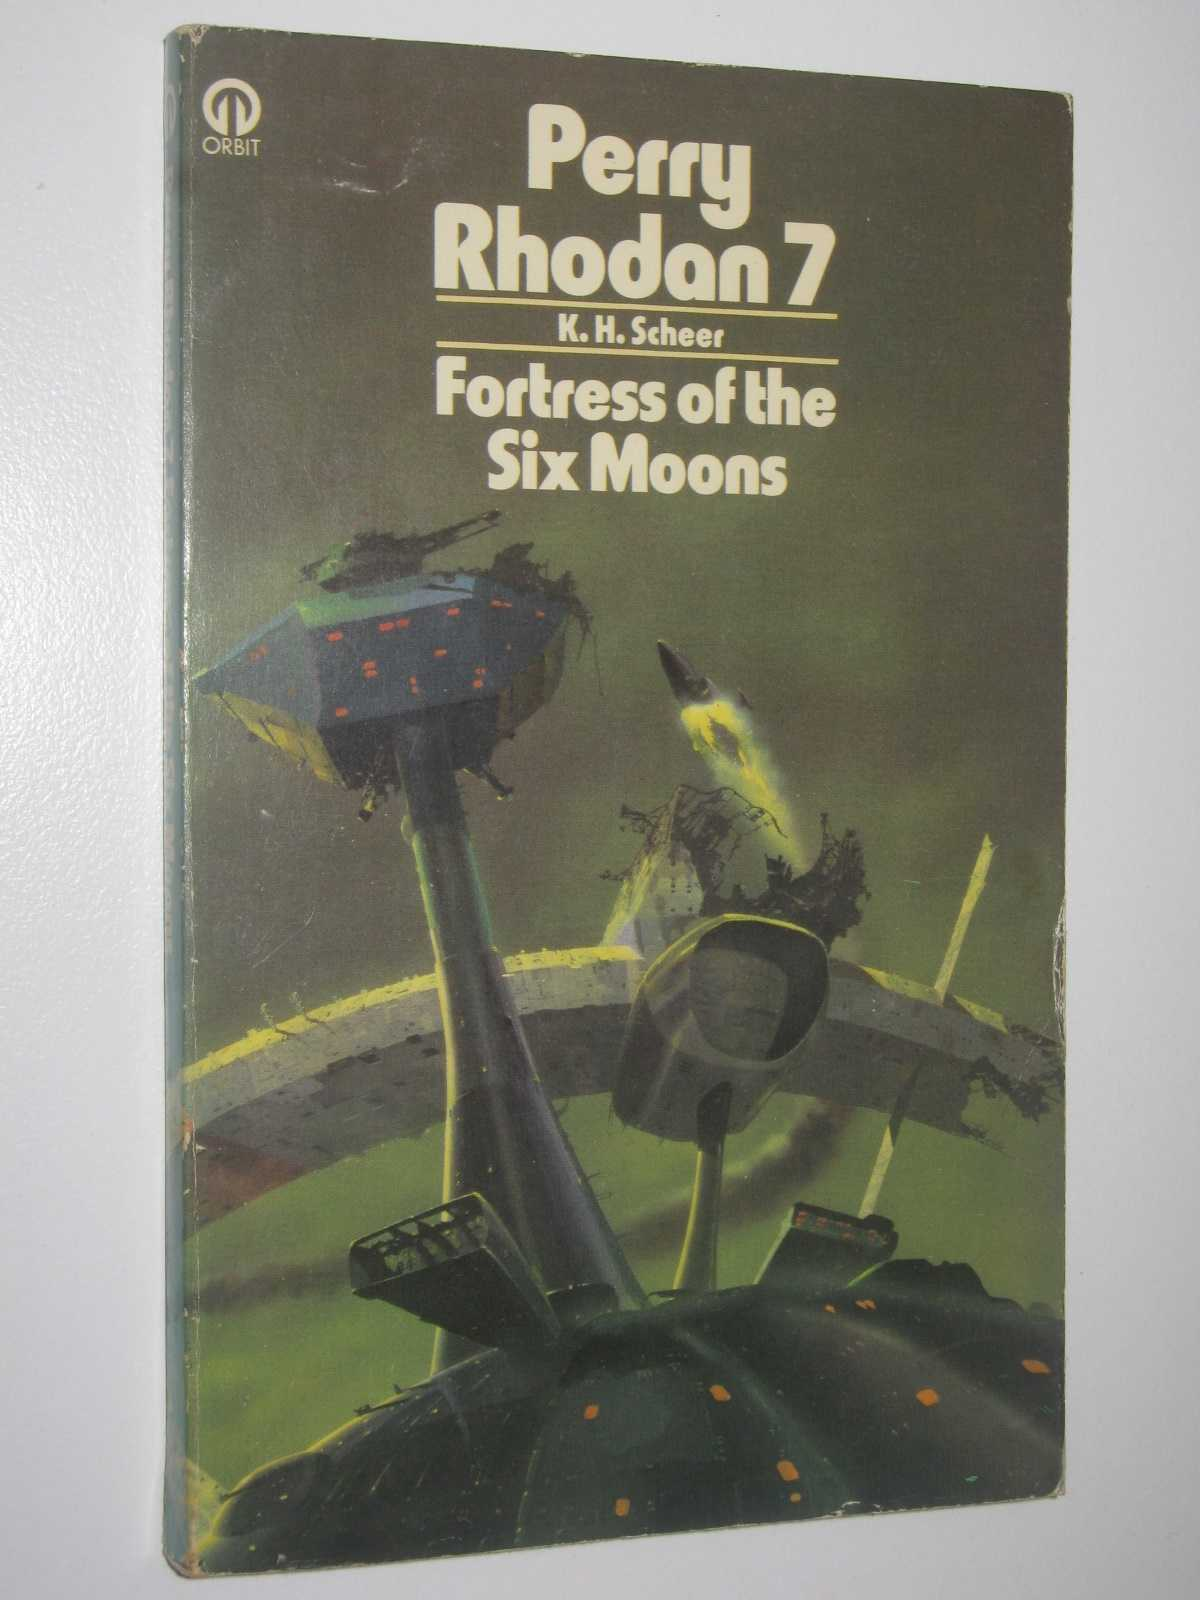 Fortress of the Six Moons - Perry Rhodan #7, Scheer, K. H.